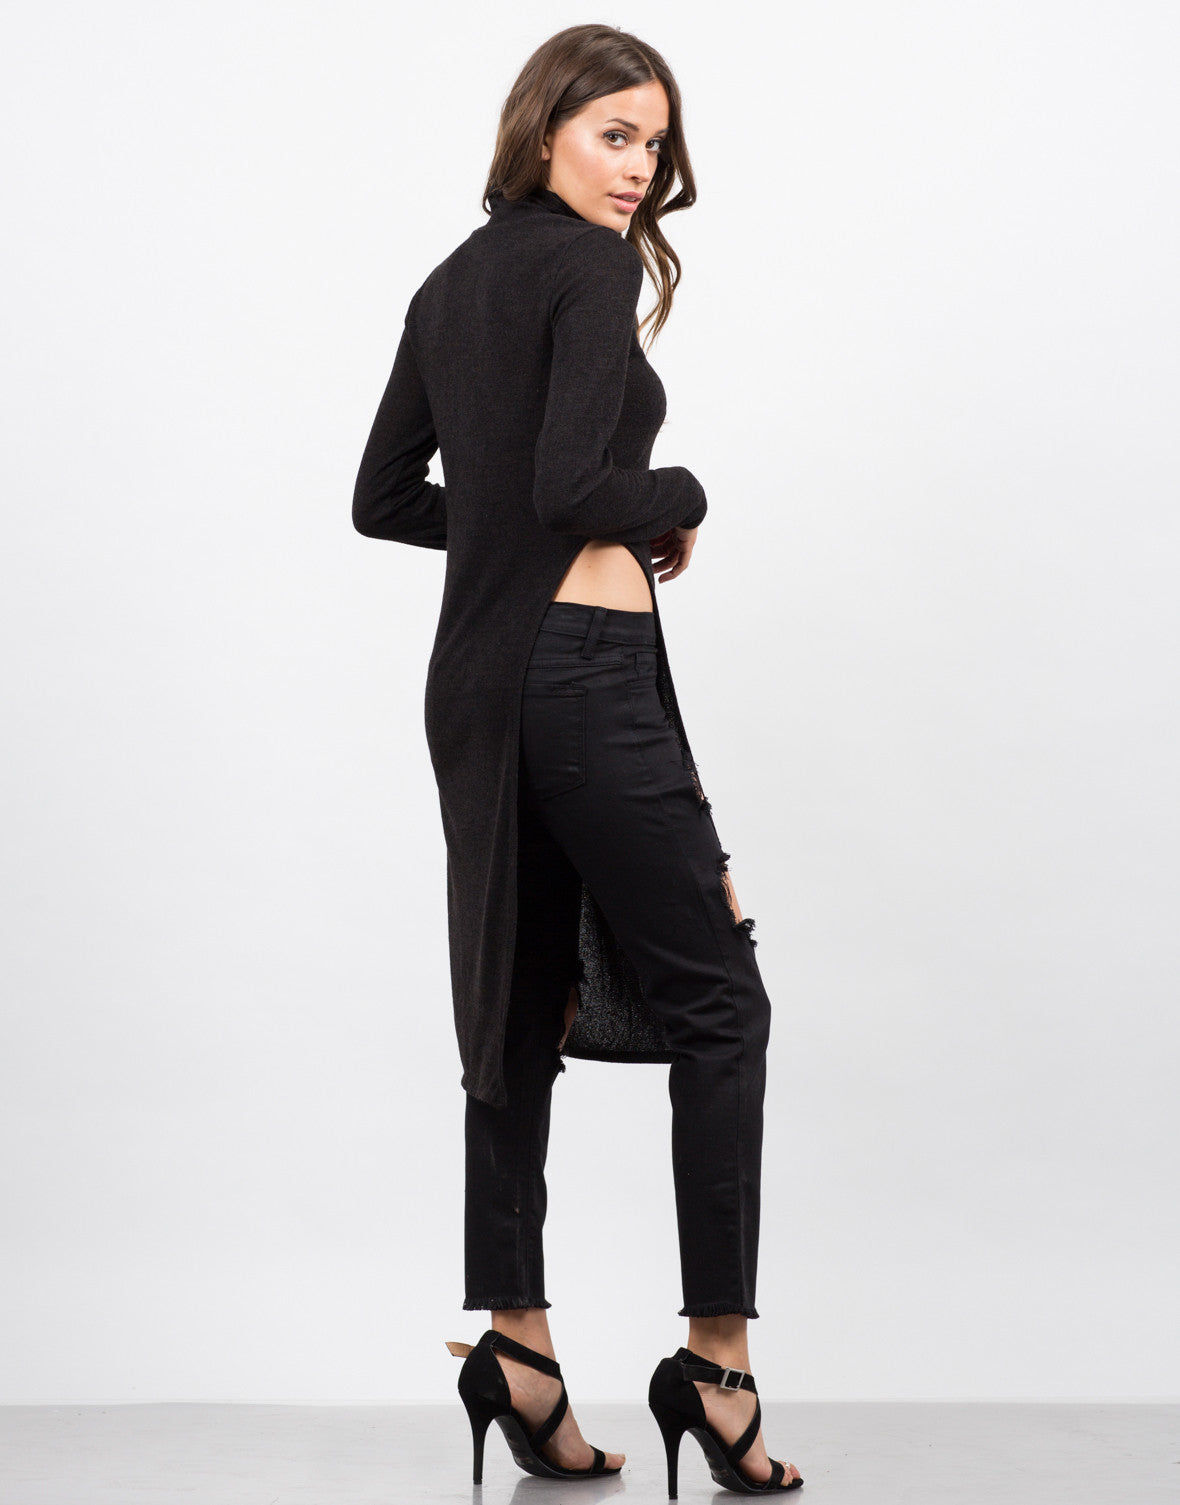 Back View of Turtleneck Side Slit Tunic Top